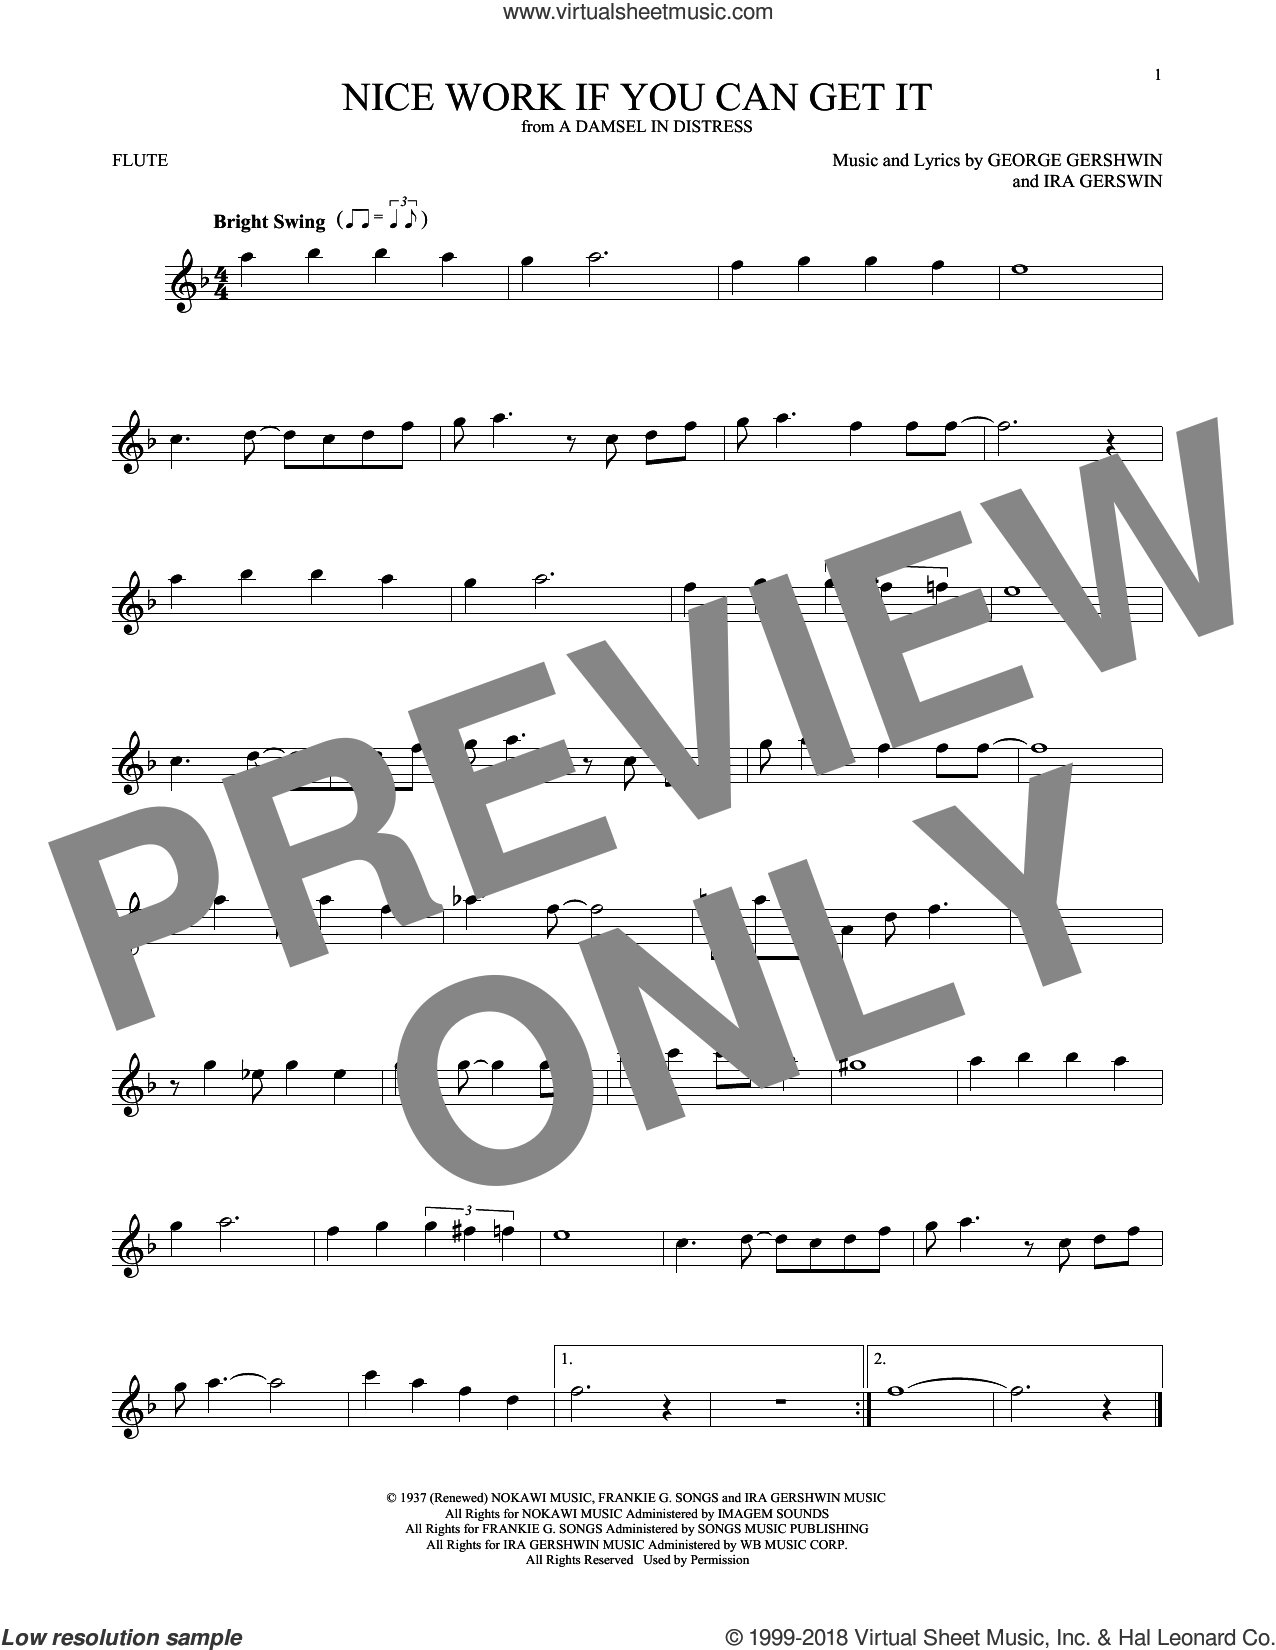 Nice Work If You Can Get It sheet music for flute solo by Frank Sinatra, George Gershwin and Ira Gershwin. Score Image Preview.